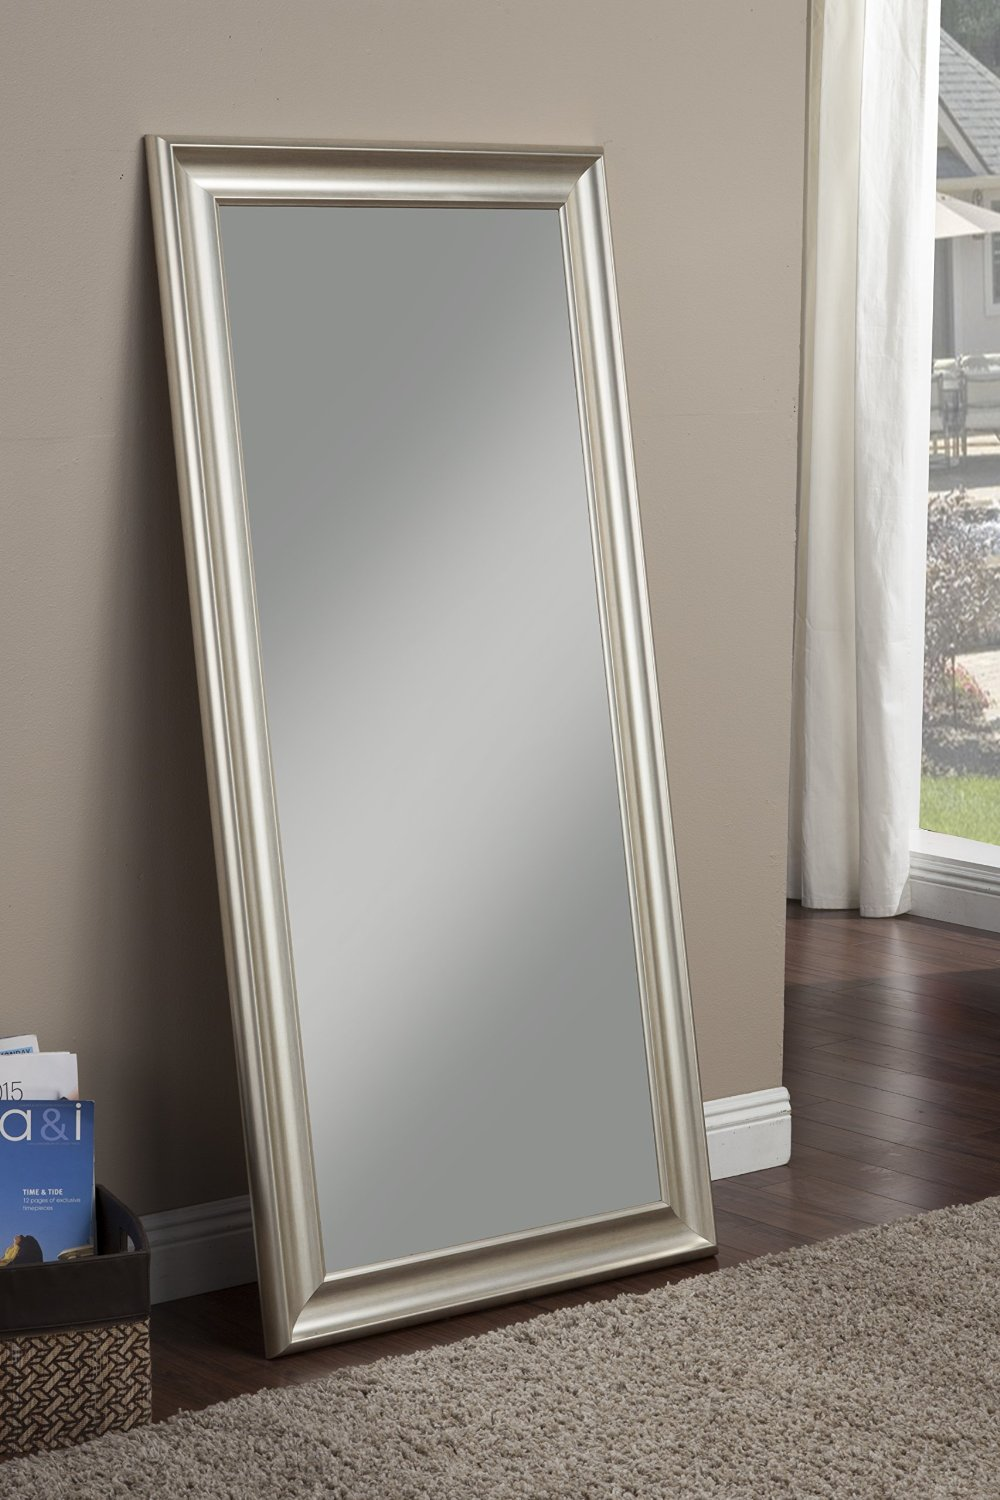 Full Length Mirror The Mirror Guide